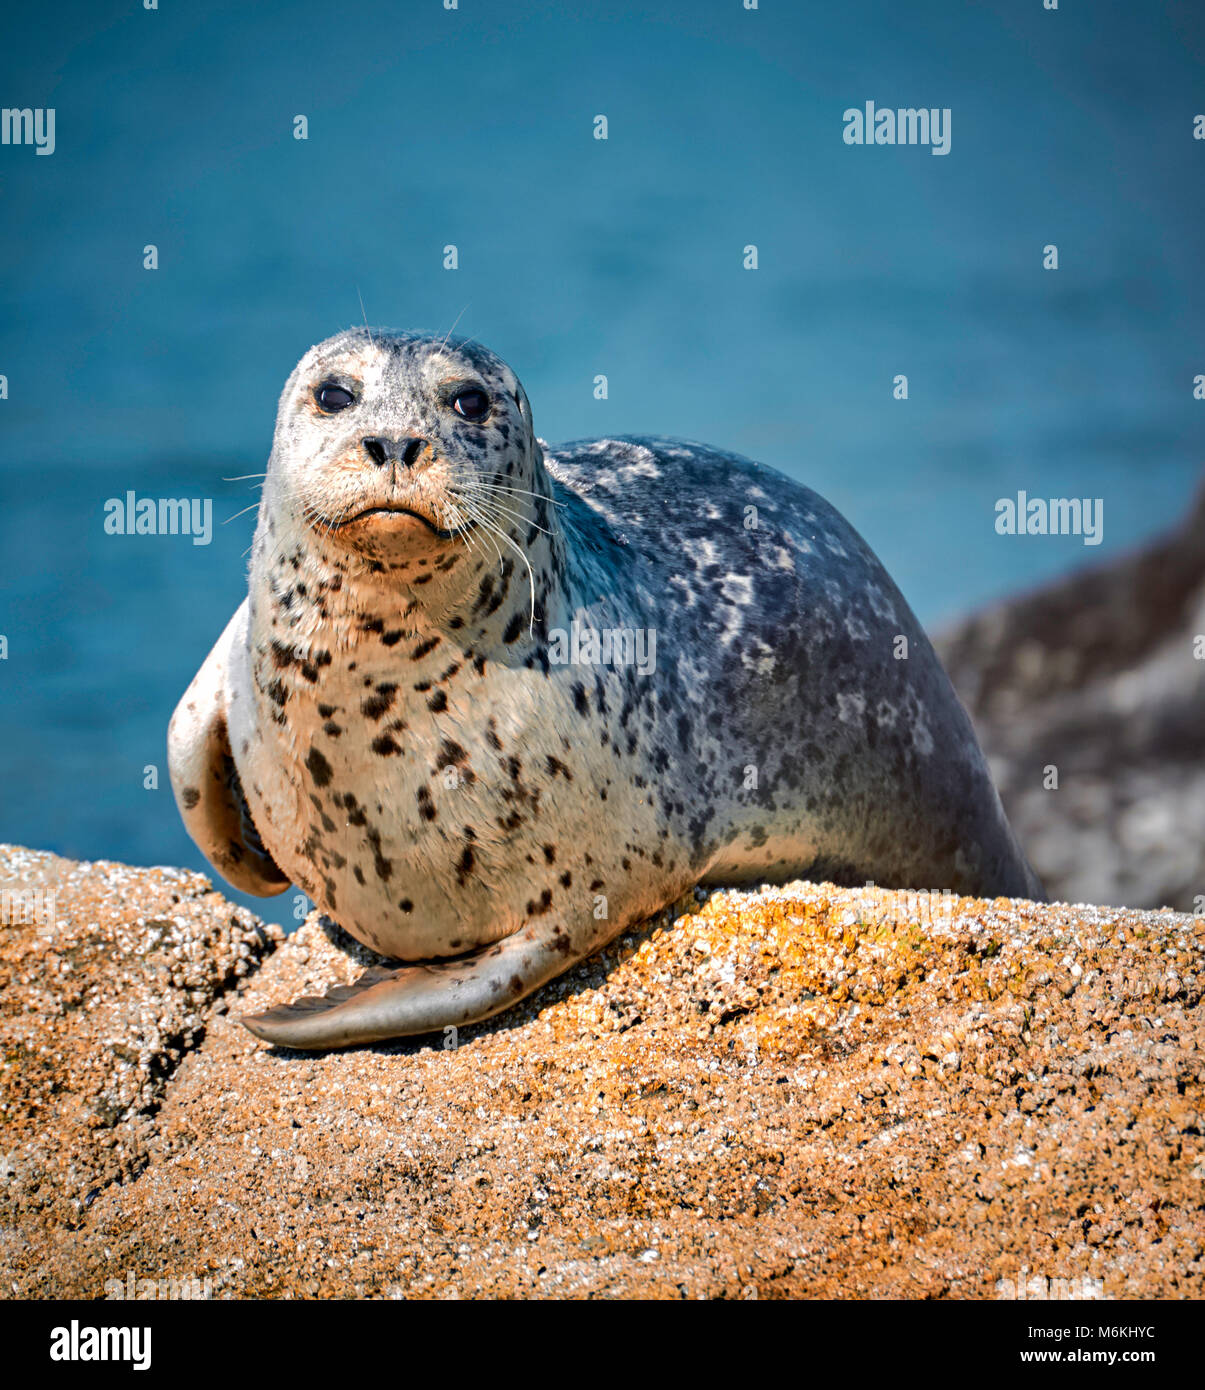 Seal relaxing on rocks near sea in hot sunny day - Stock Image